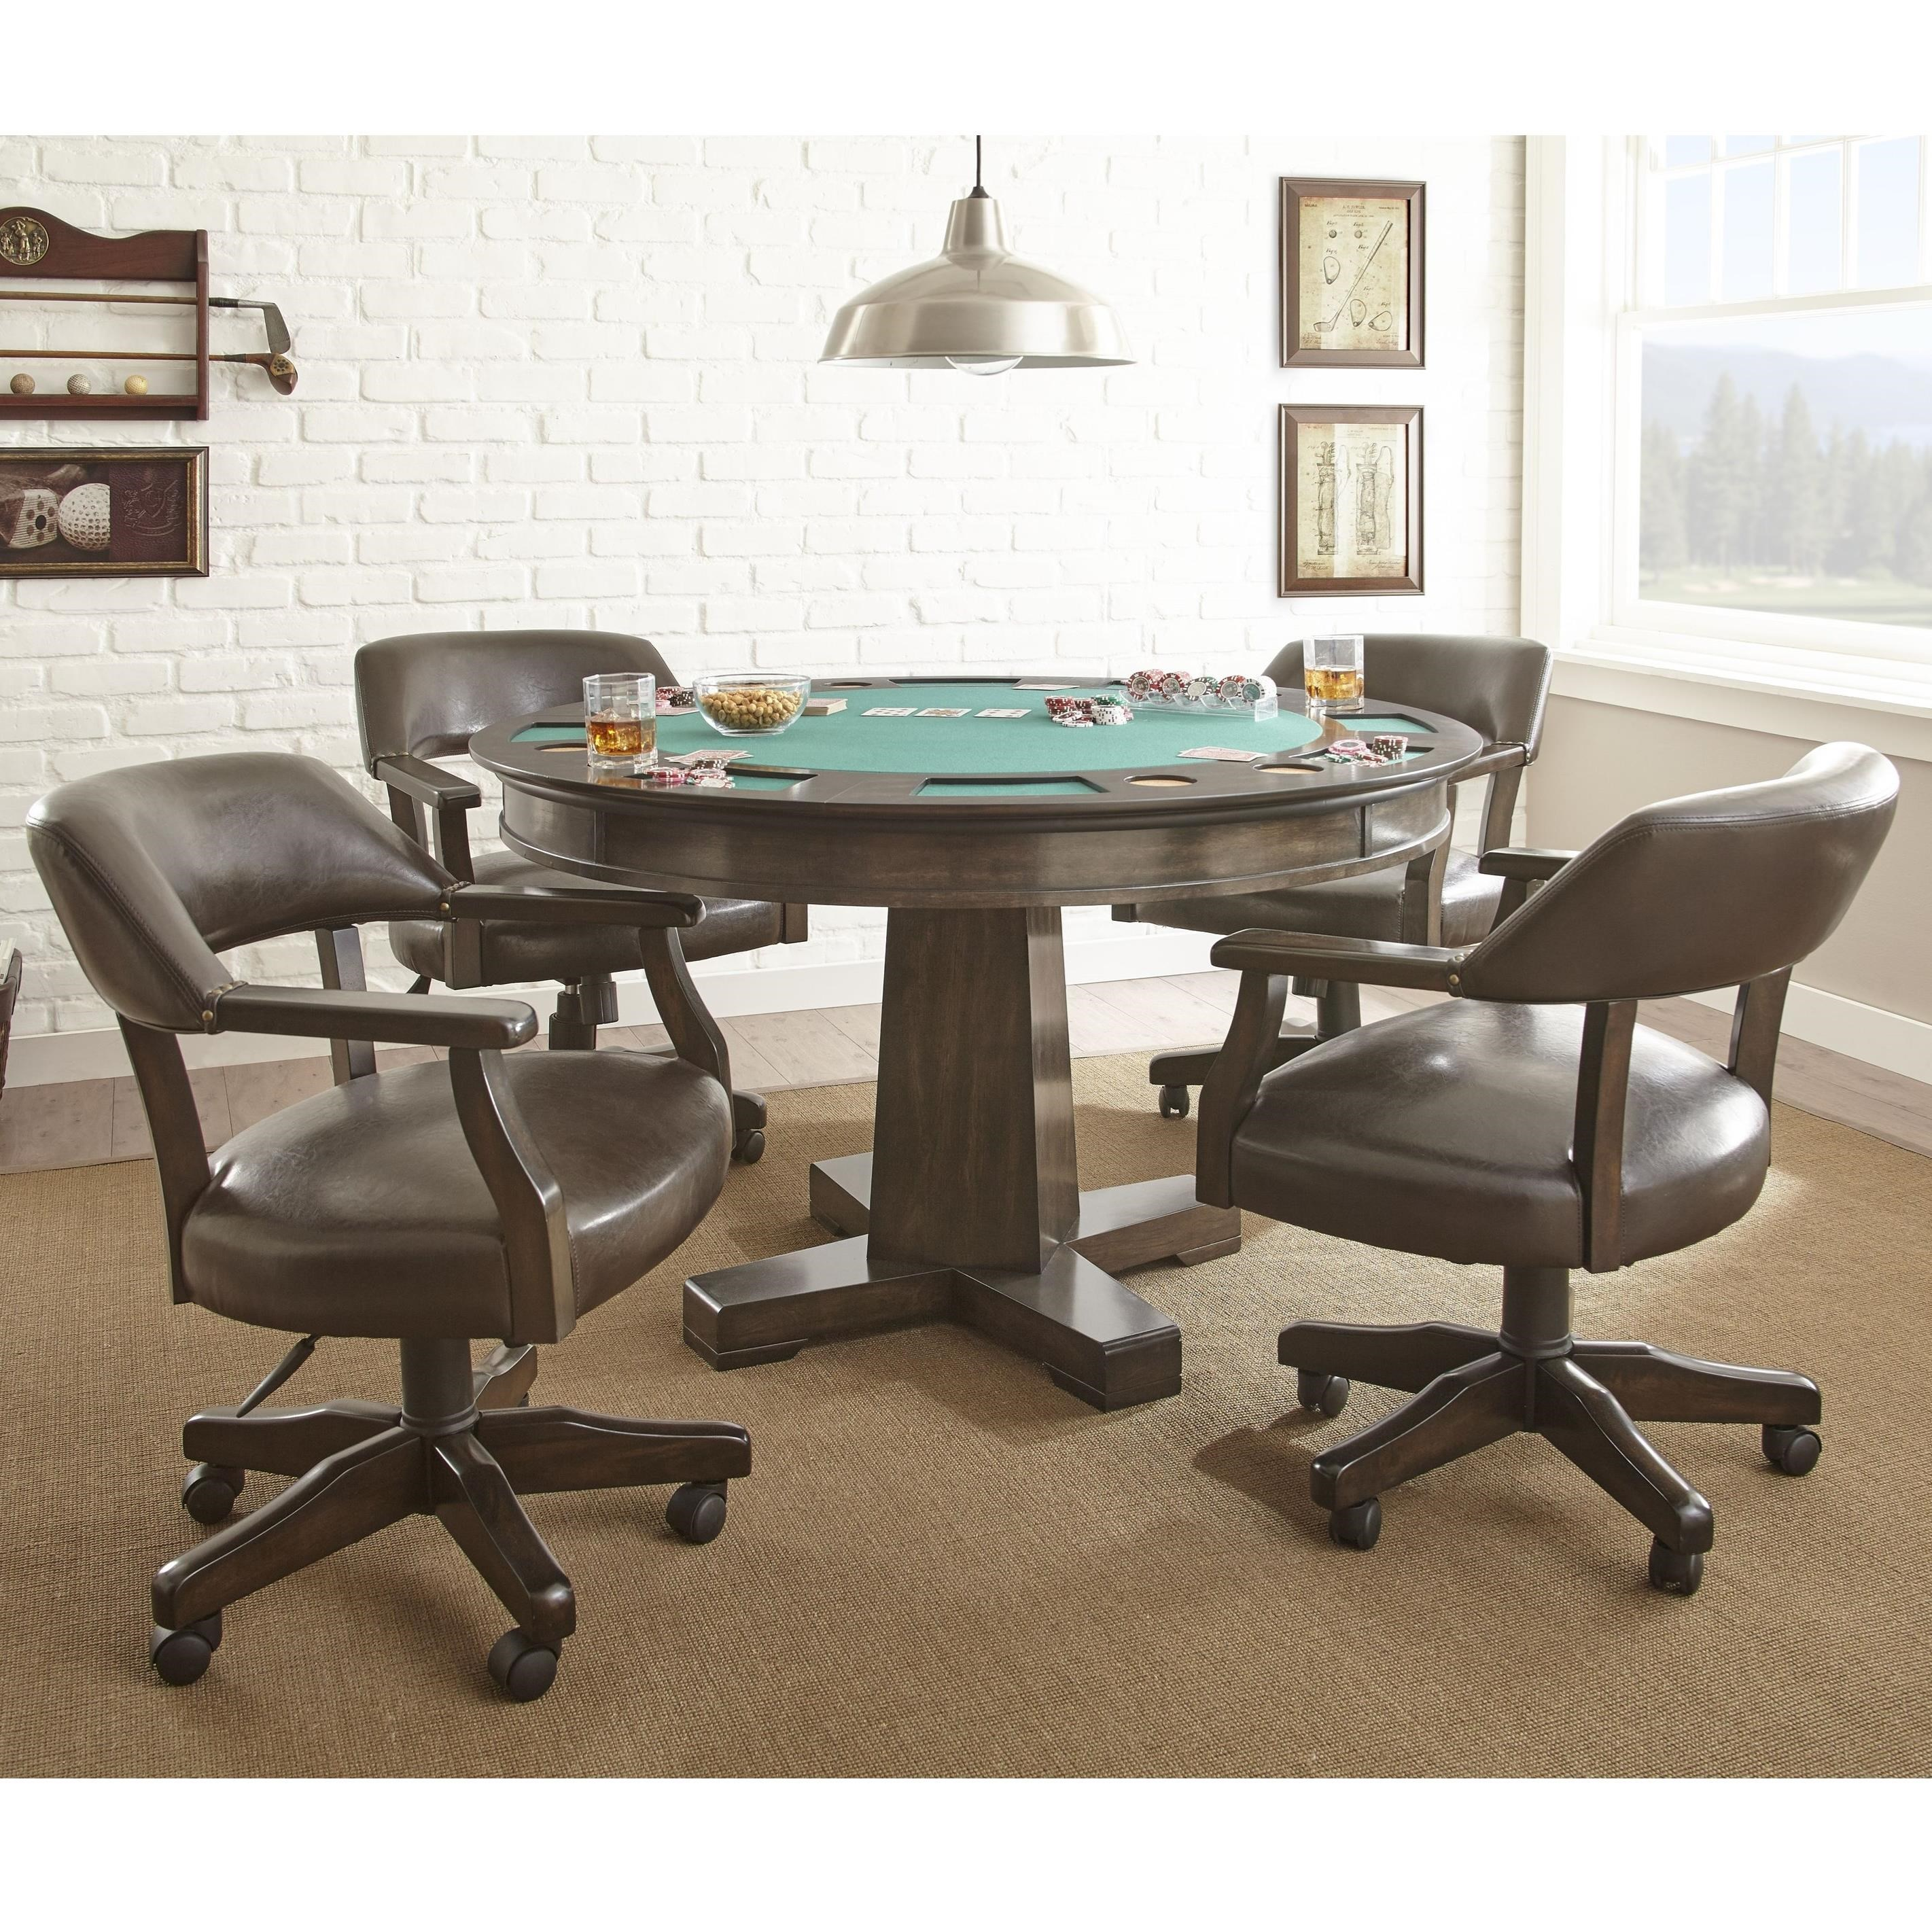 Ruby Game Table Set by Steve Silver at Walker's Furniture